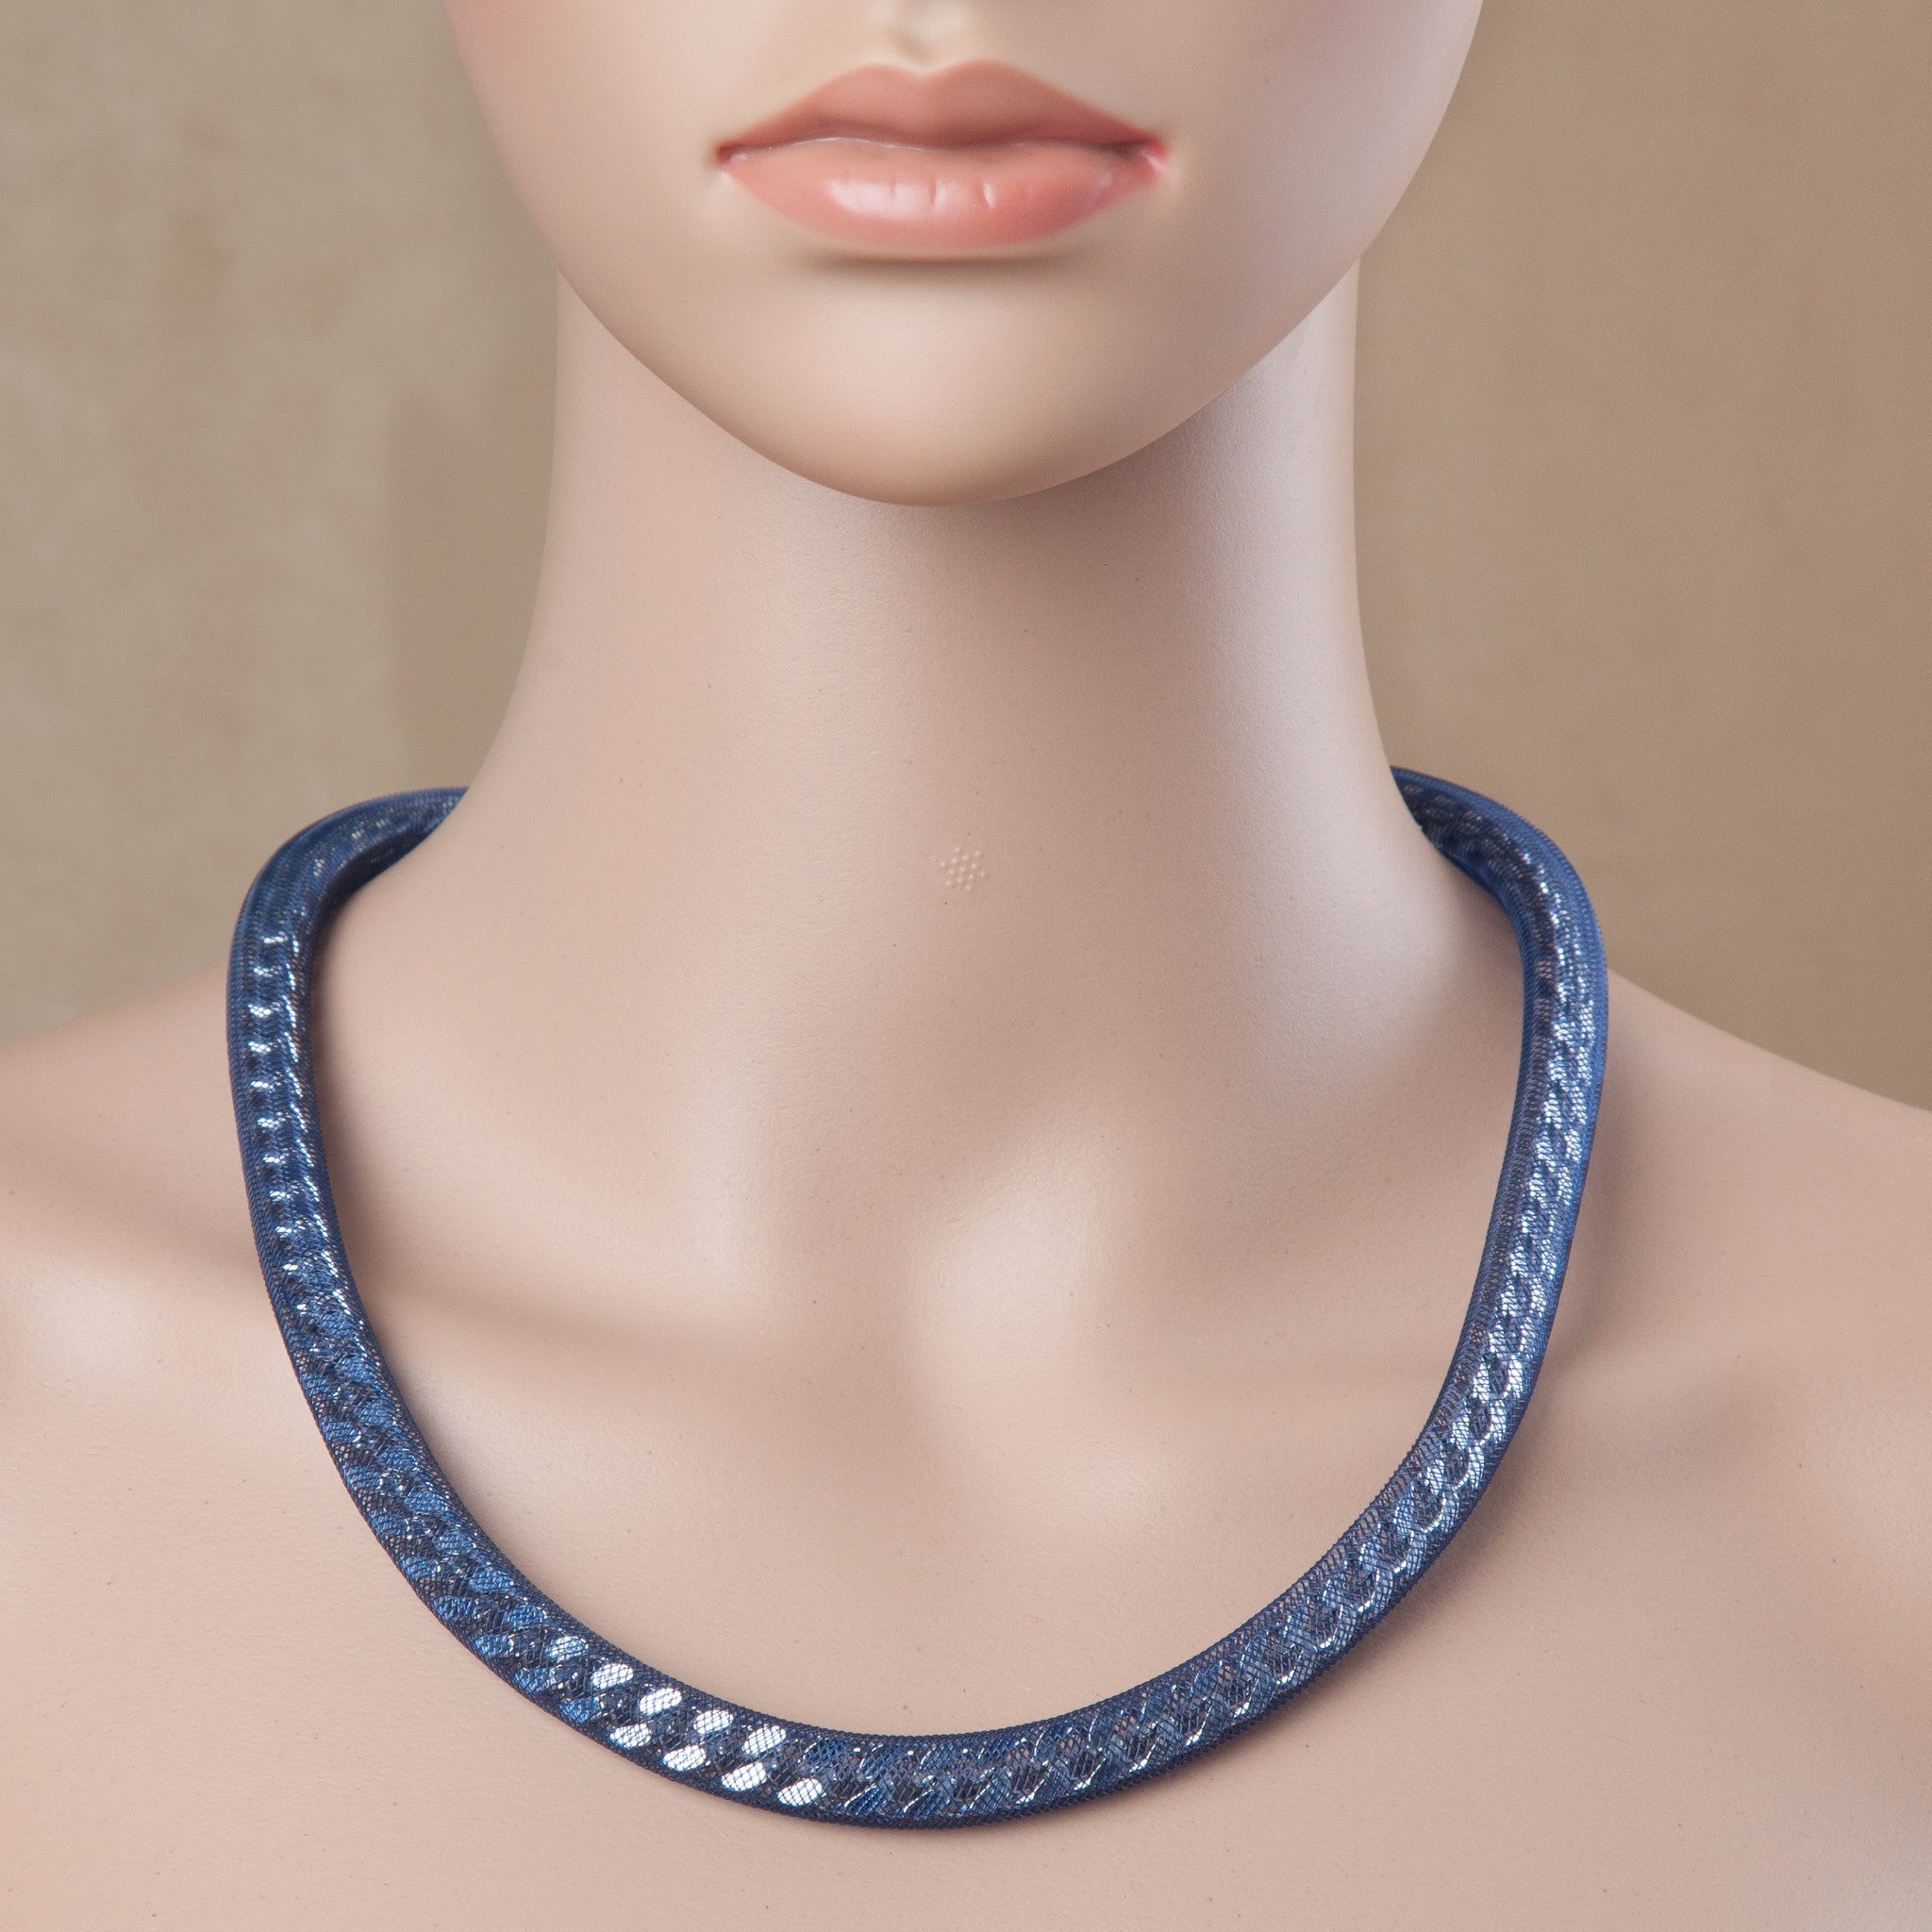 PEEK A BOO NECKLACE NAVY BLUE